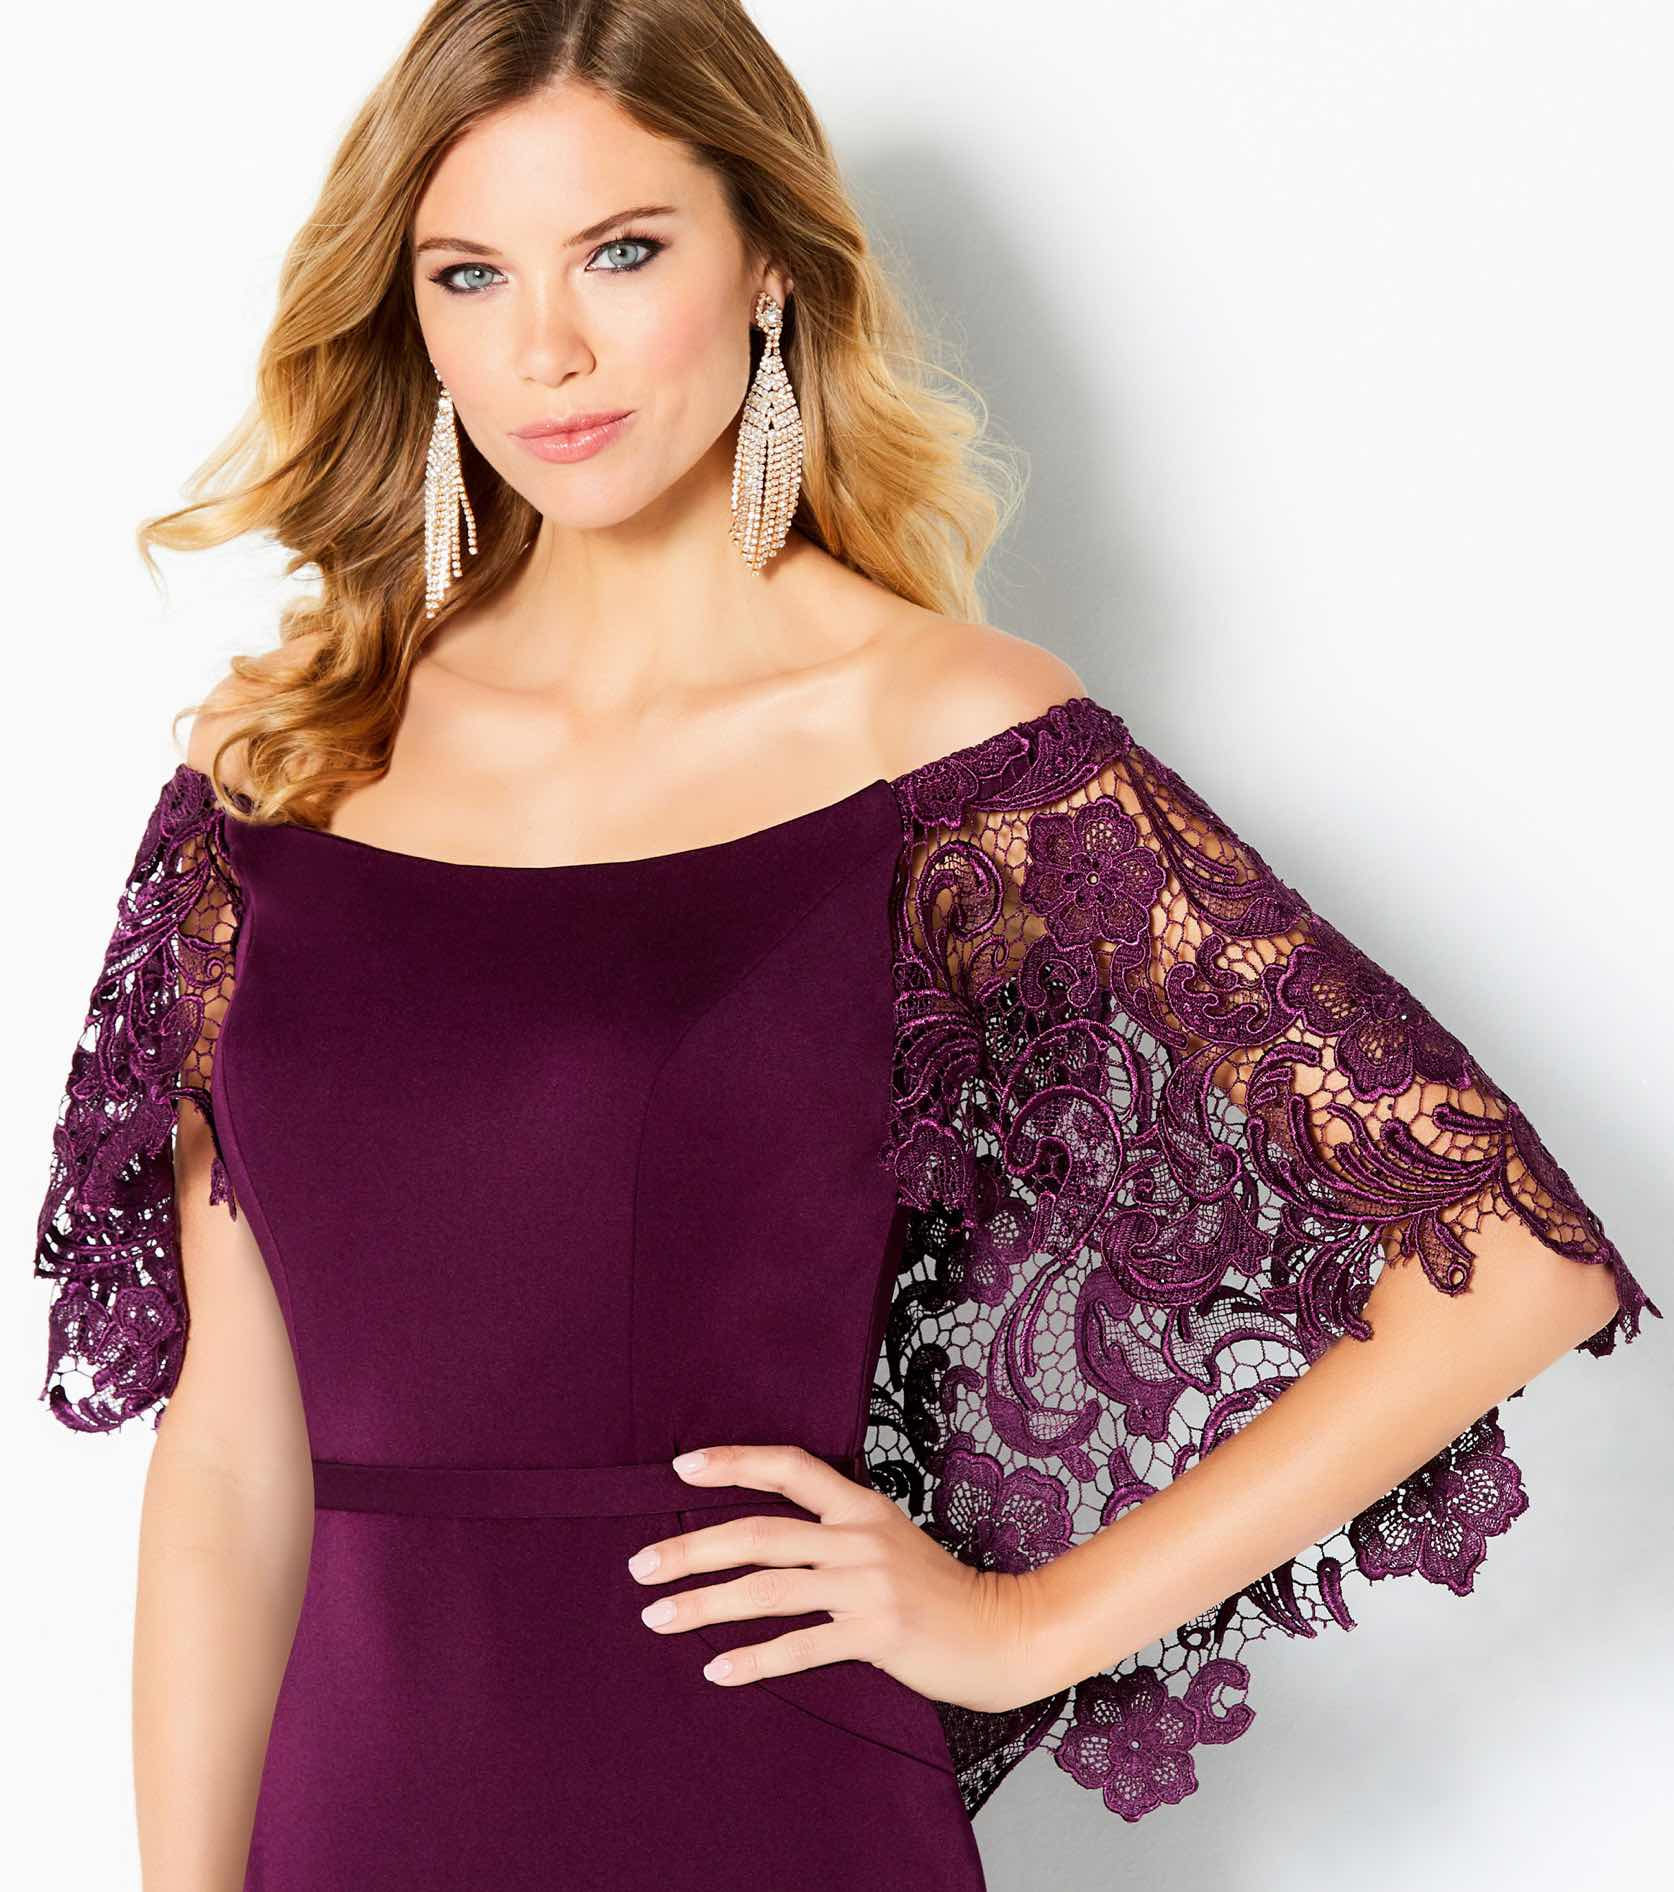 Model in plum Cameron Black dress with lace sleeves